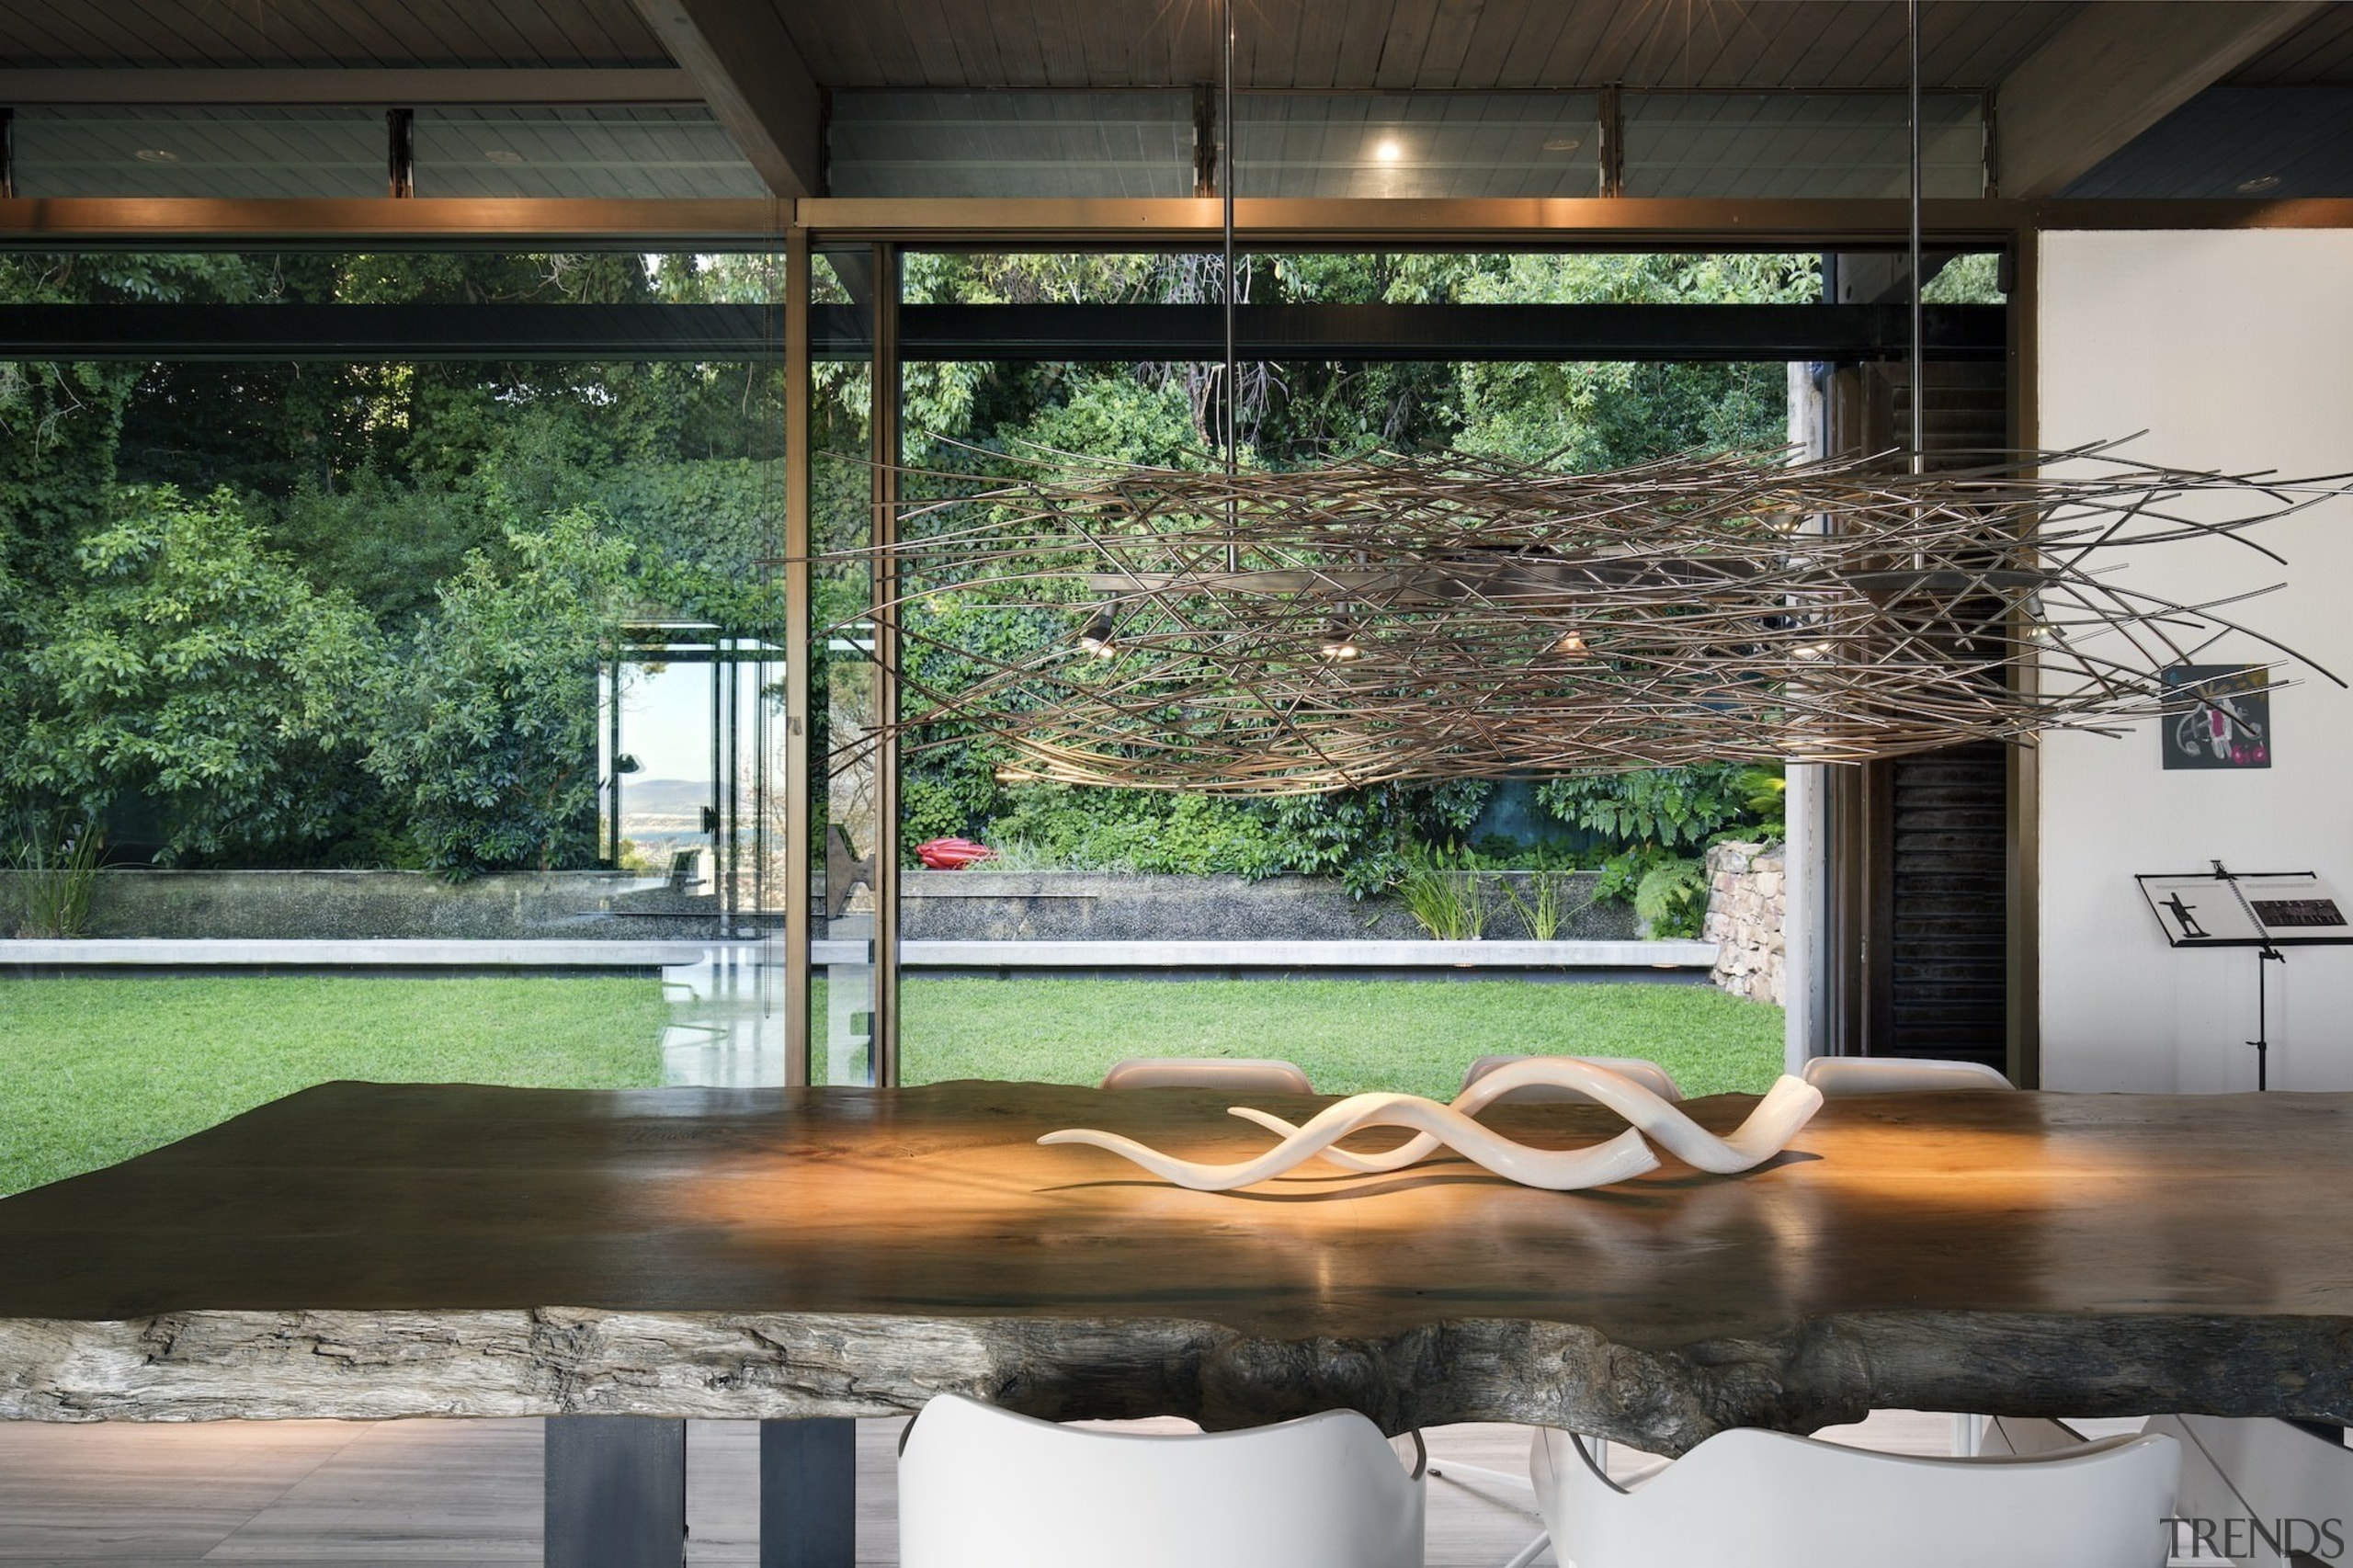 Significant work went into the interior design – architecture, home, house, interior design, table, window, black, gray